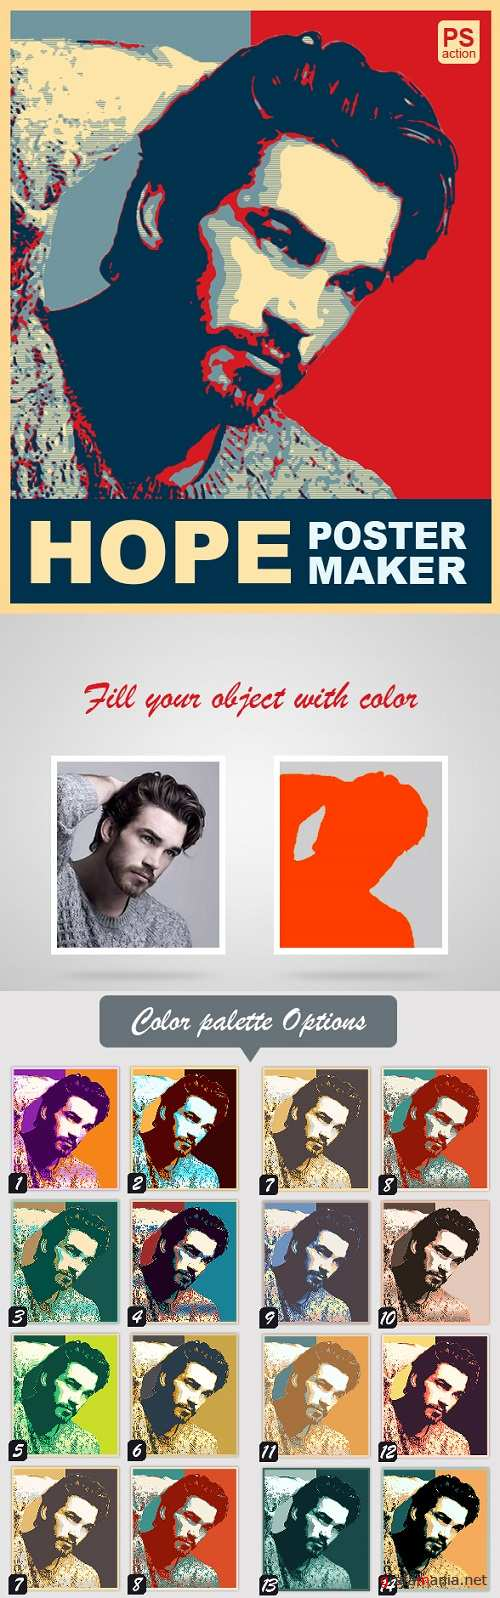 Hope Poster Maker PS Action 21359995